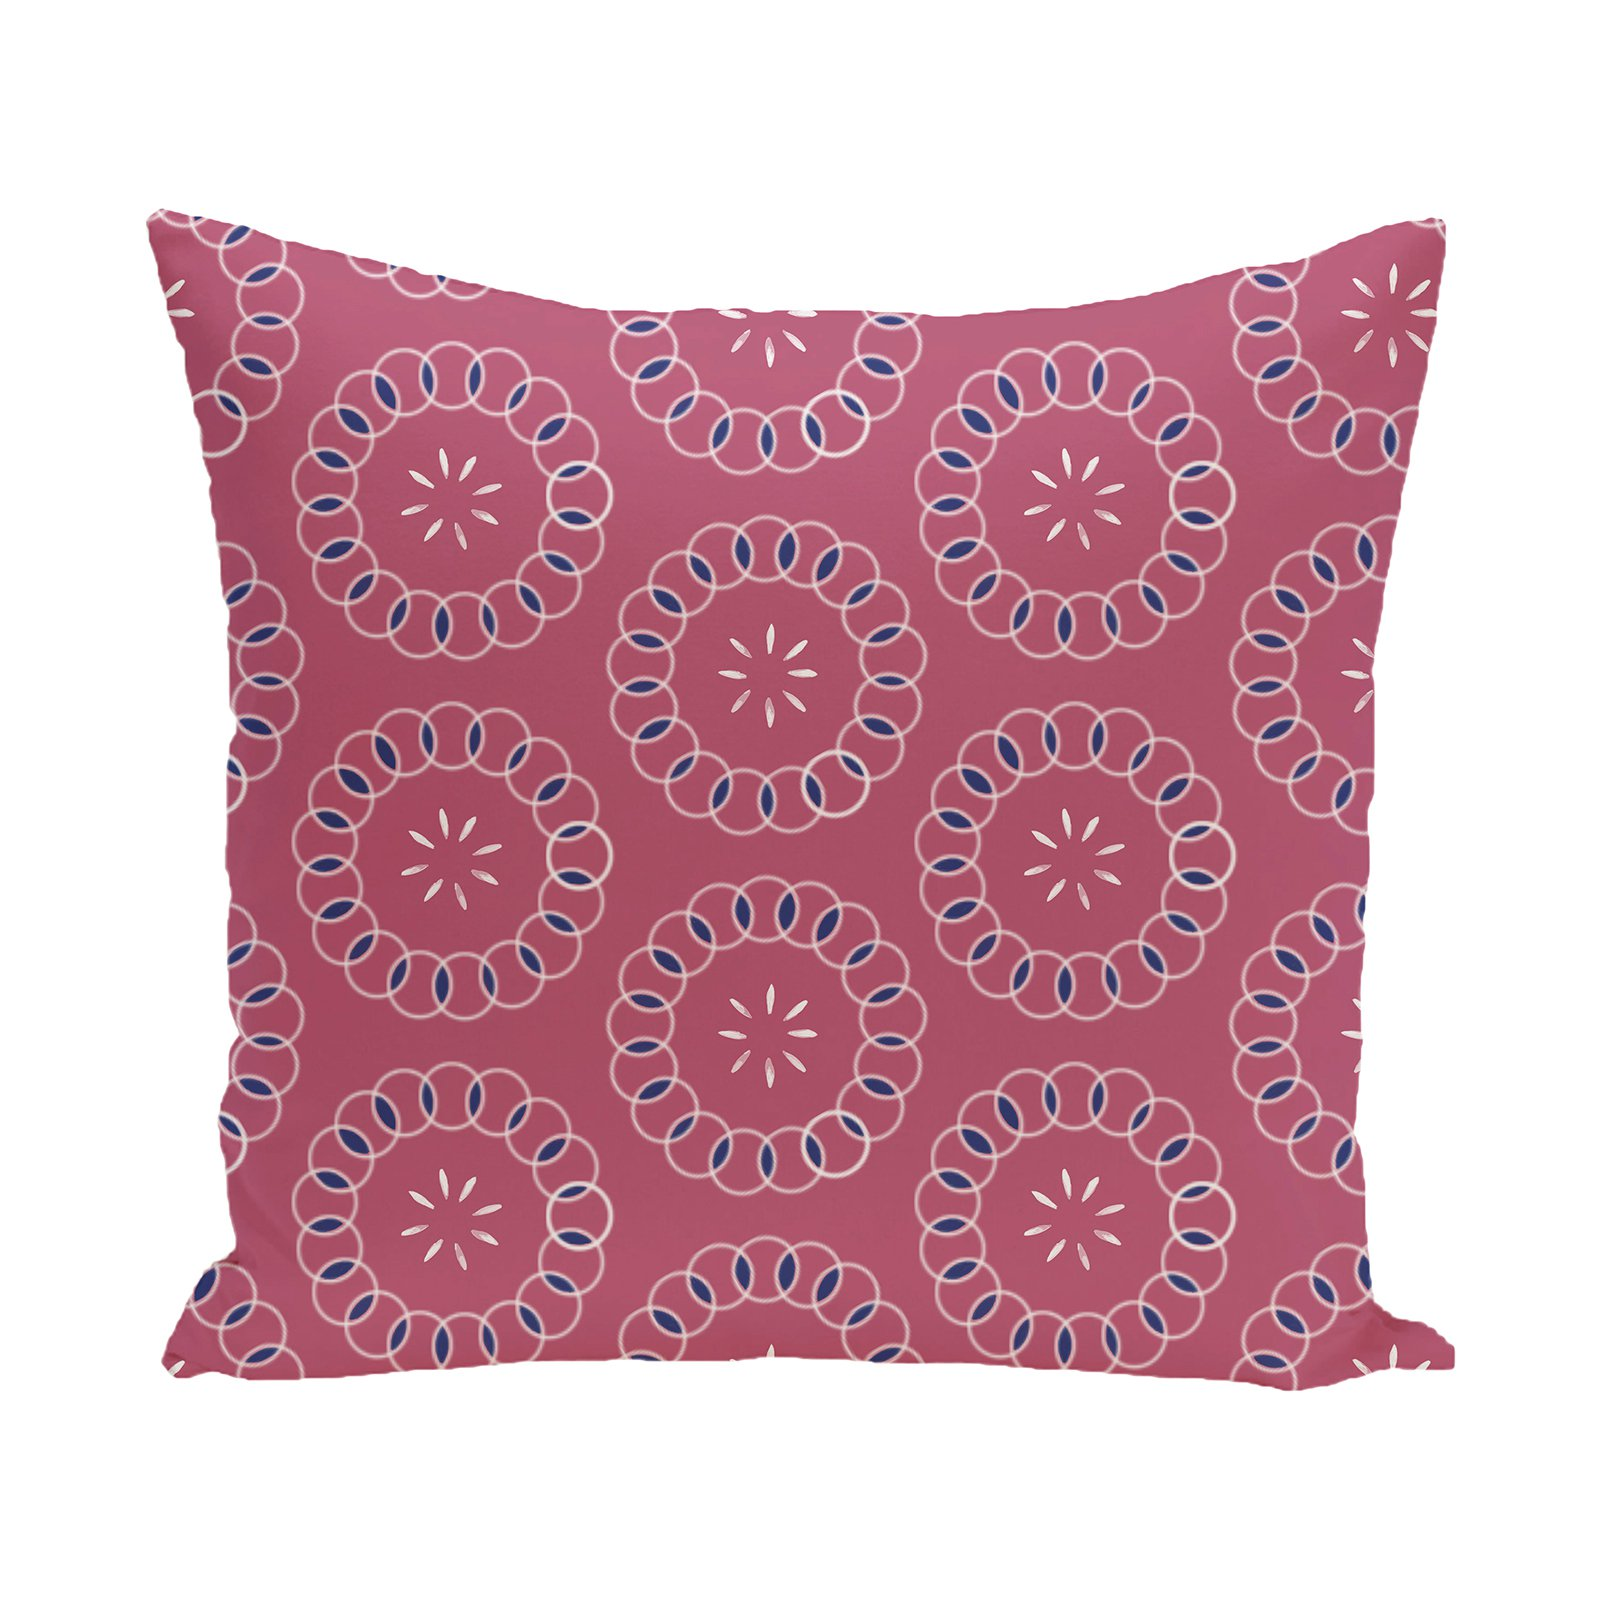 E by Design Happiness Decorative Pillow